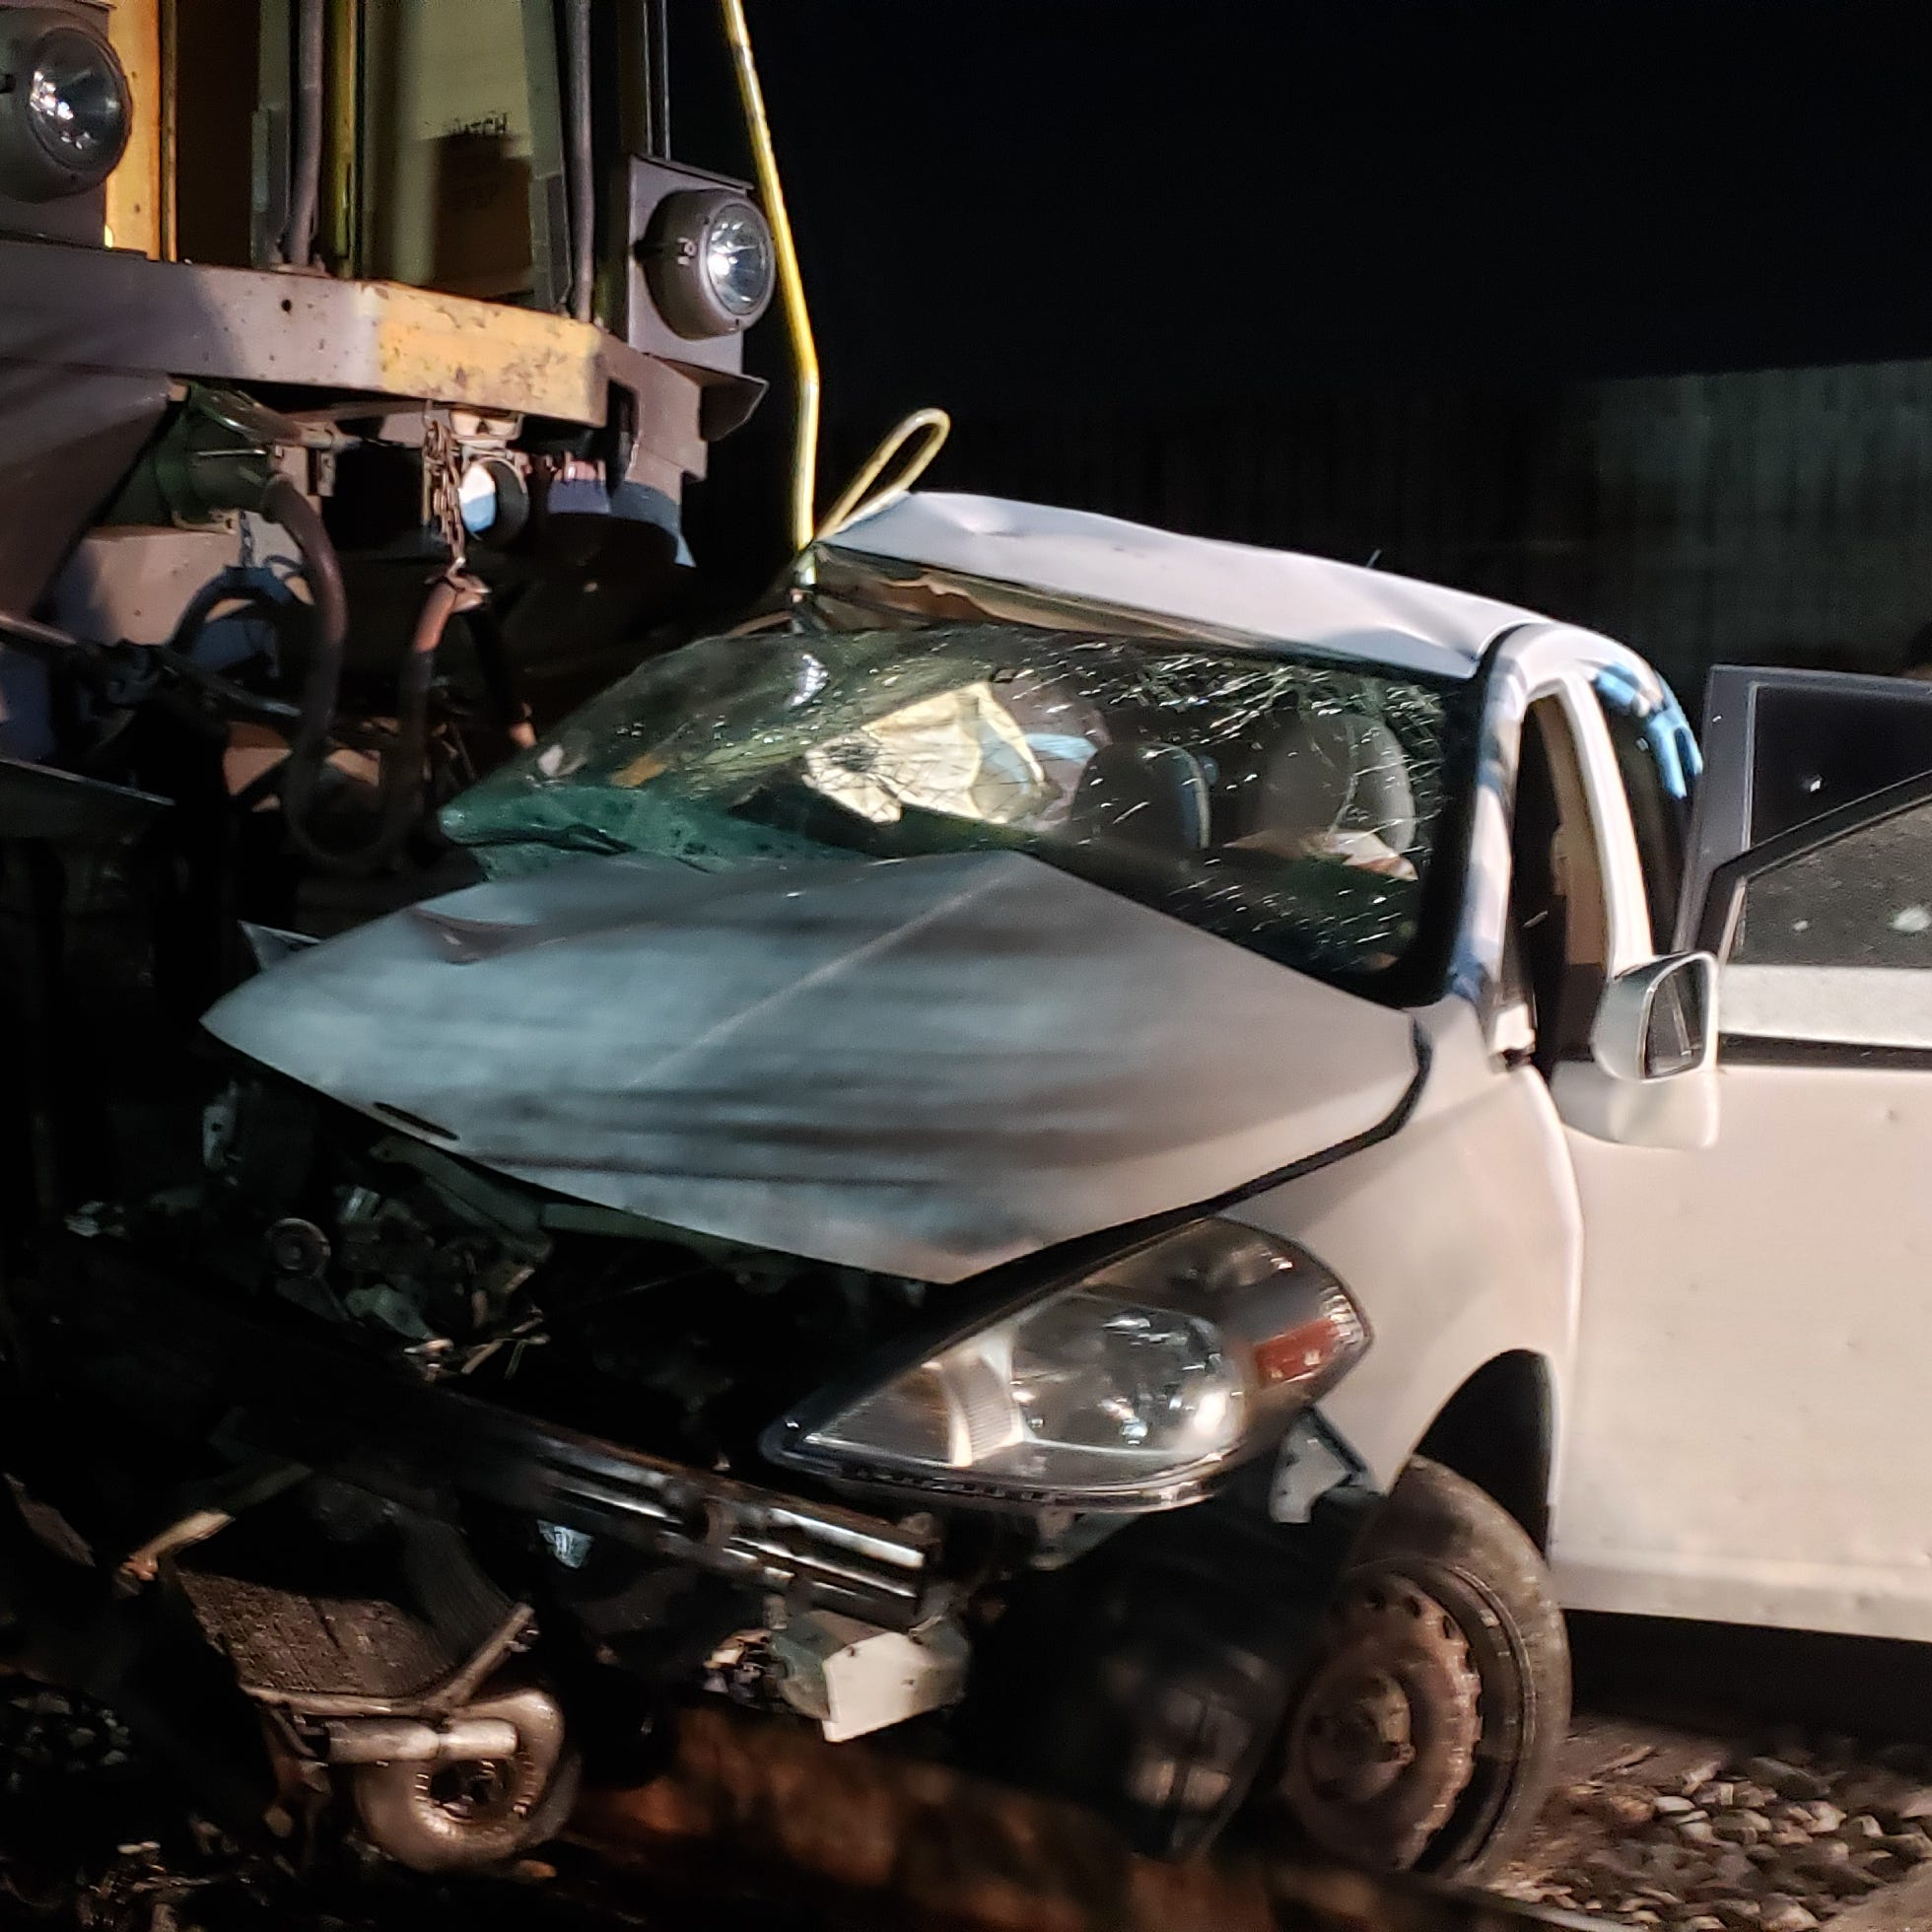 20-year-old Greenwood woman killed after train hits her car in Johnson County